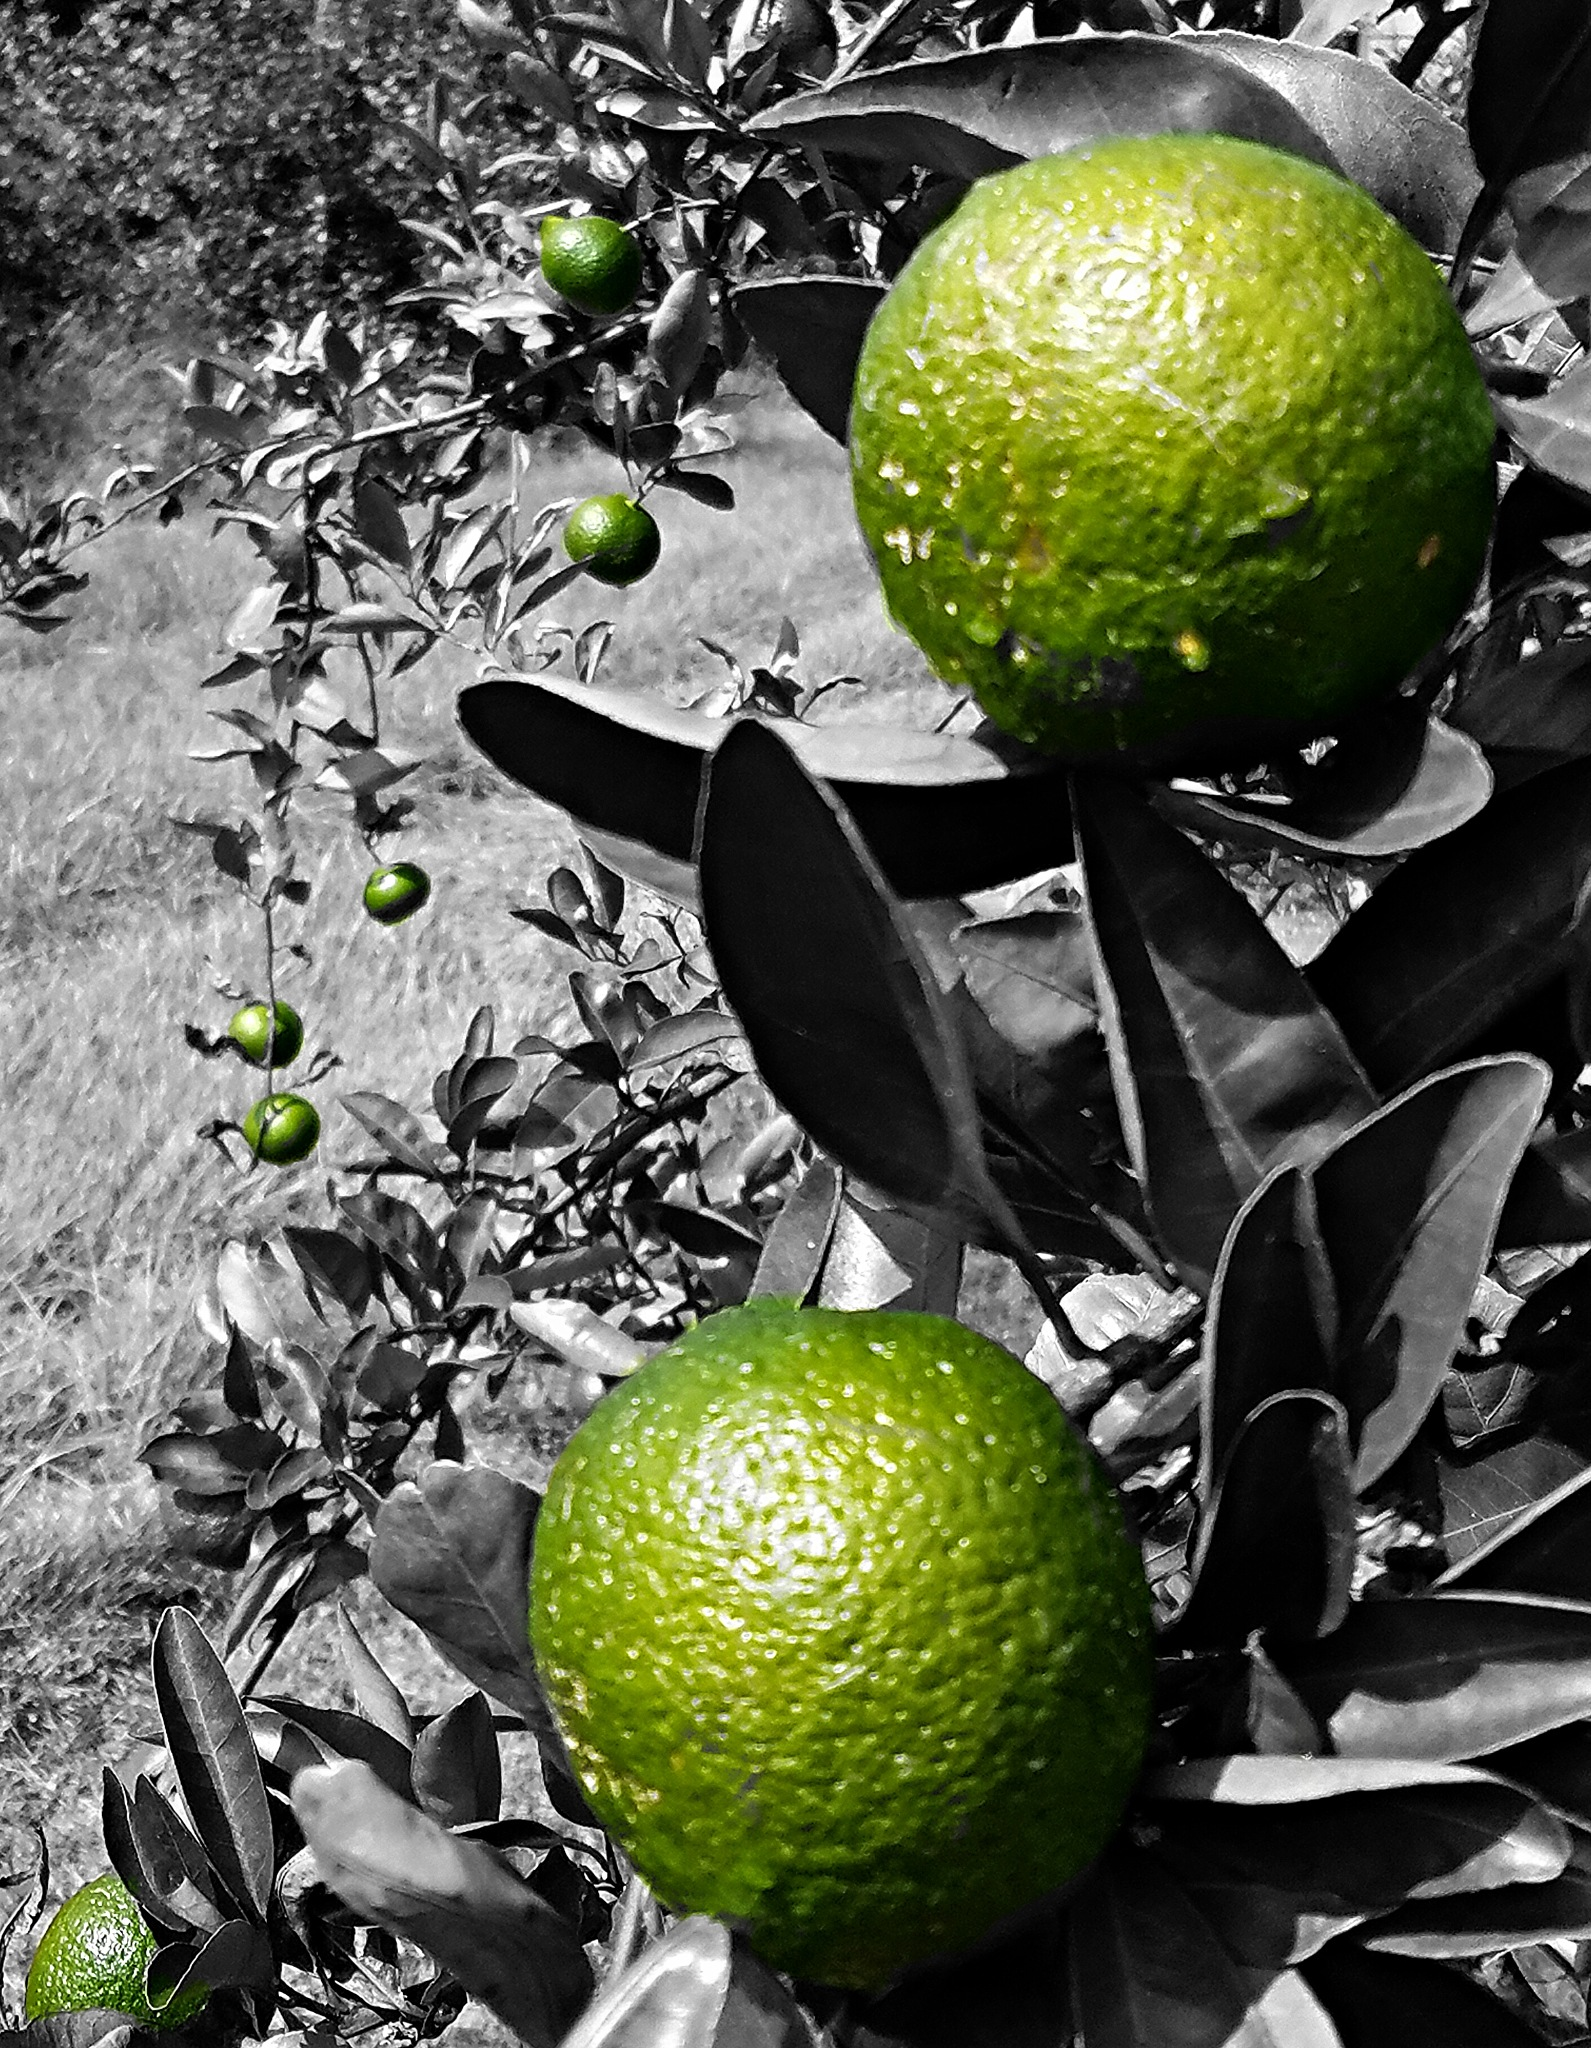 satsuma orchard about to ripen by kathy.peace.3